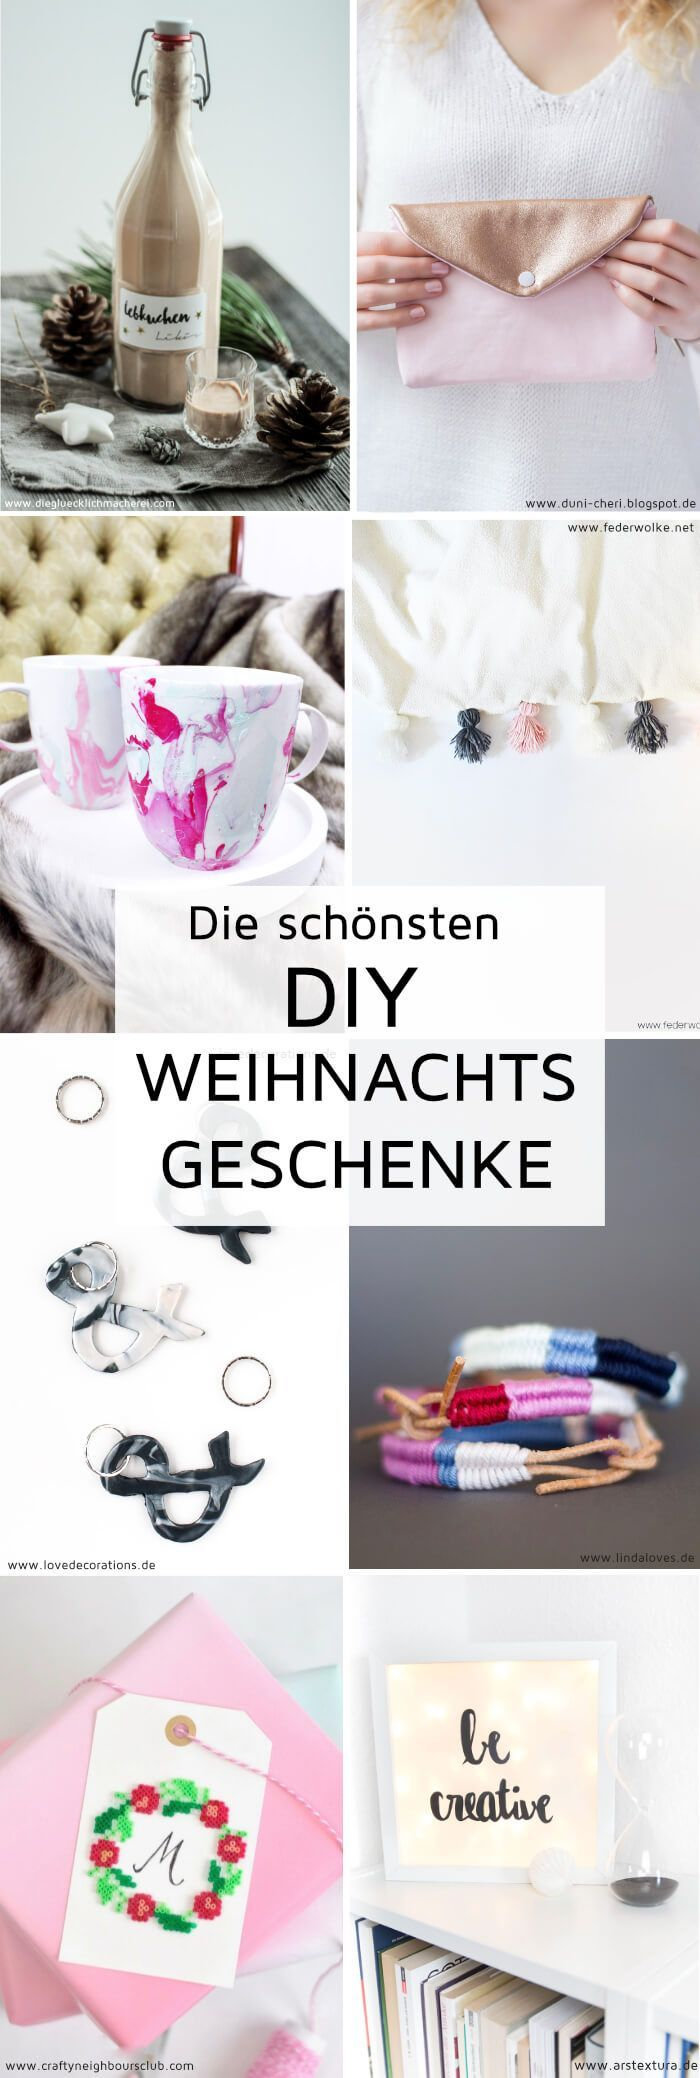 25 einzigartige diy geschenke ideen auf pinterest geschenke diy weihnachtsgeschenke und. Black Bedroom Furniture Sets. Home Design Ideas